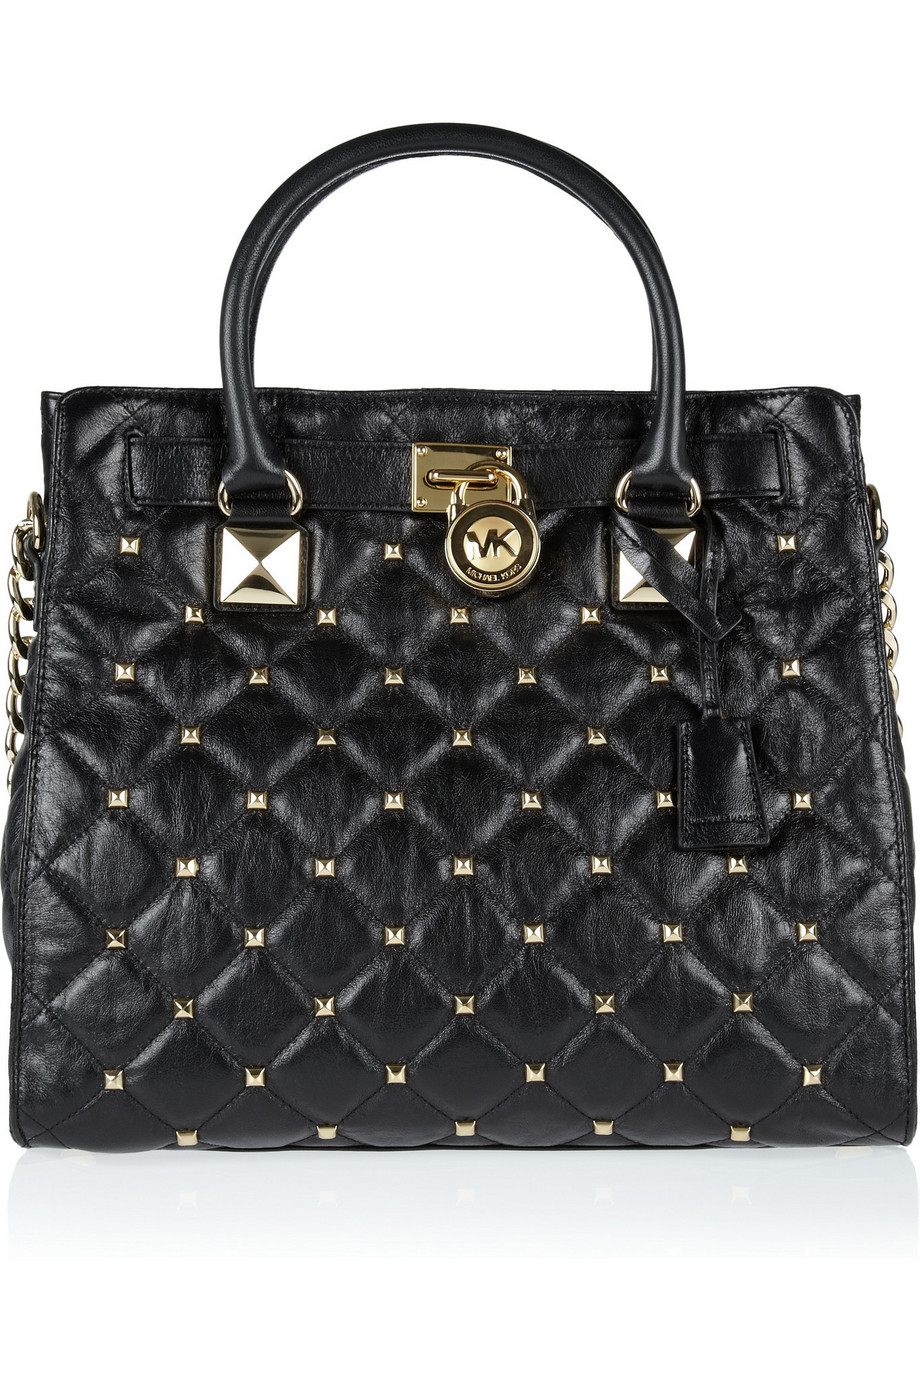 Michael By Michael Kors Hamilton Black Studded Tote Shoulder Bag 78